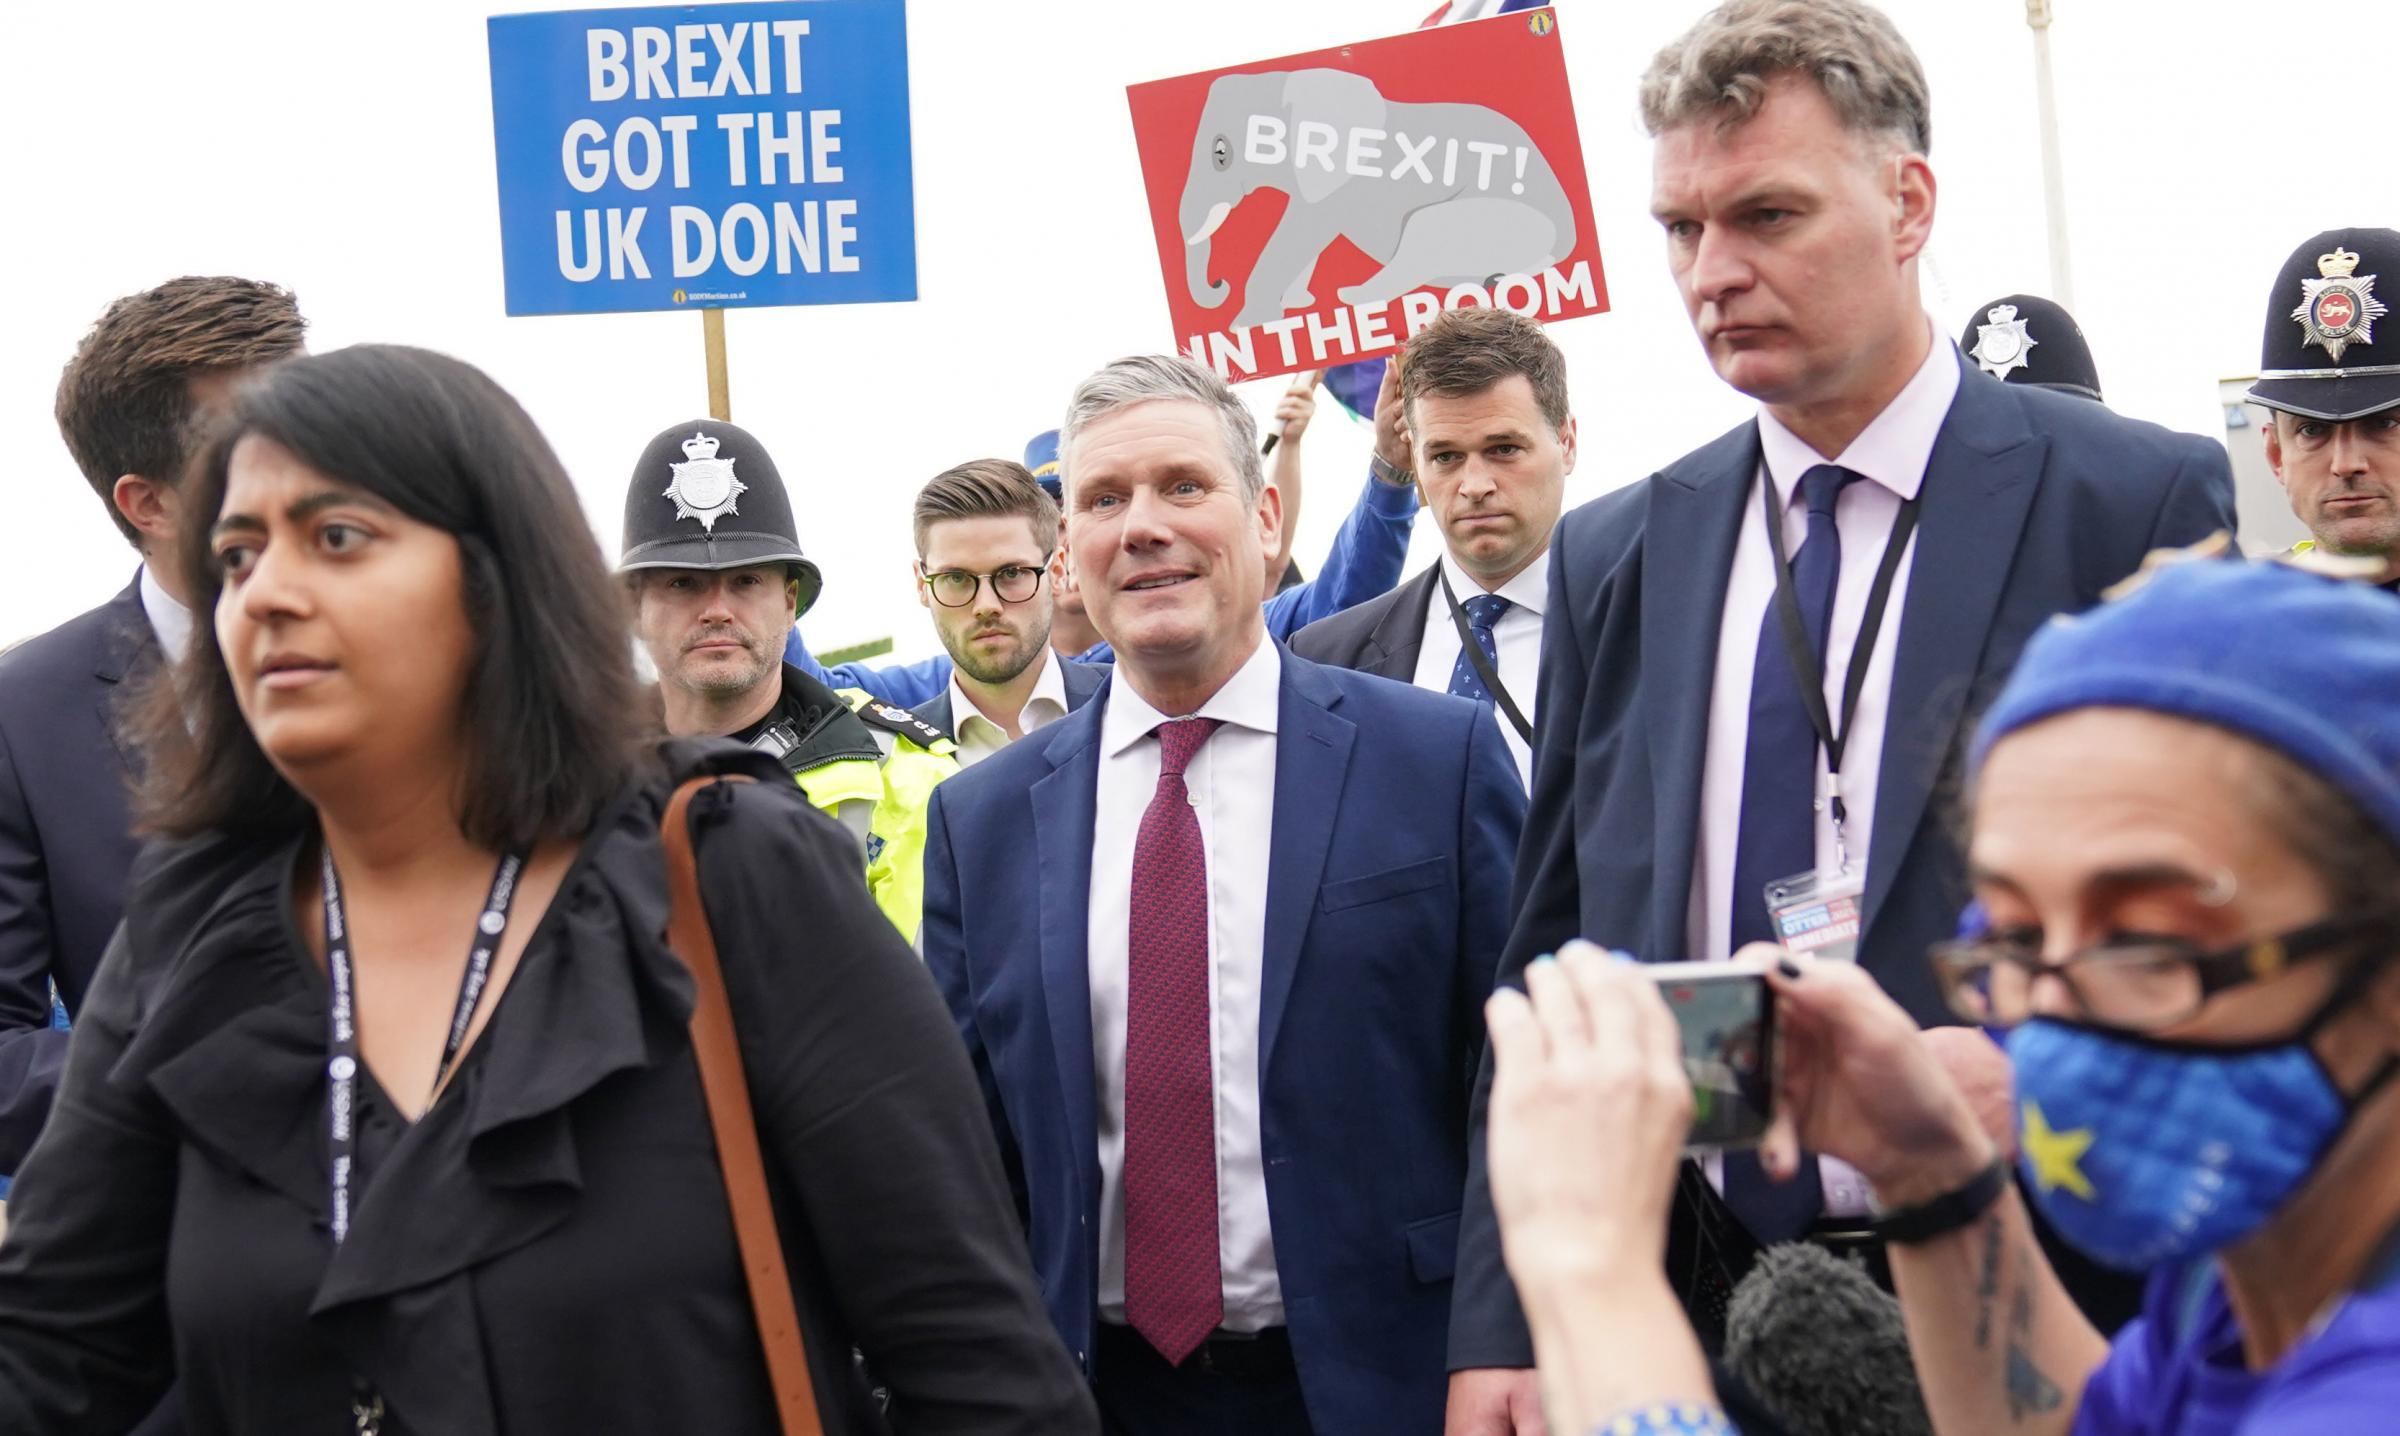 Ruth Wishart: Tory chicanery and Keir Starmer's devolution plans won't save this Union